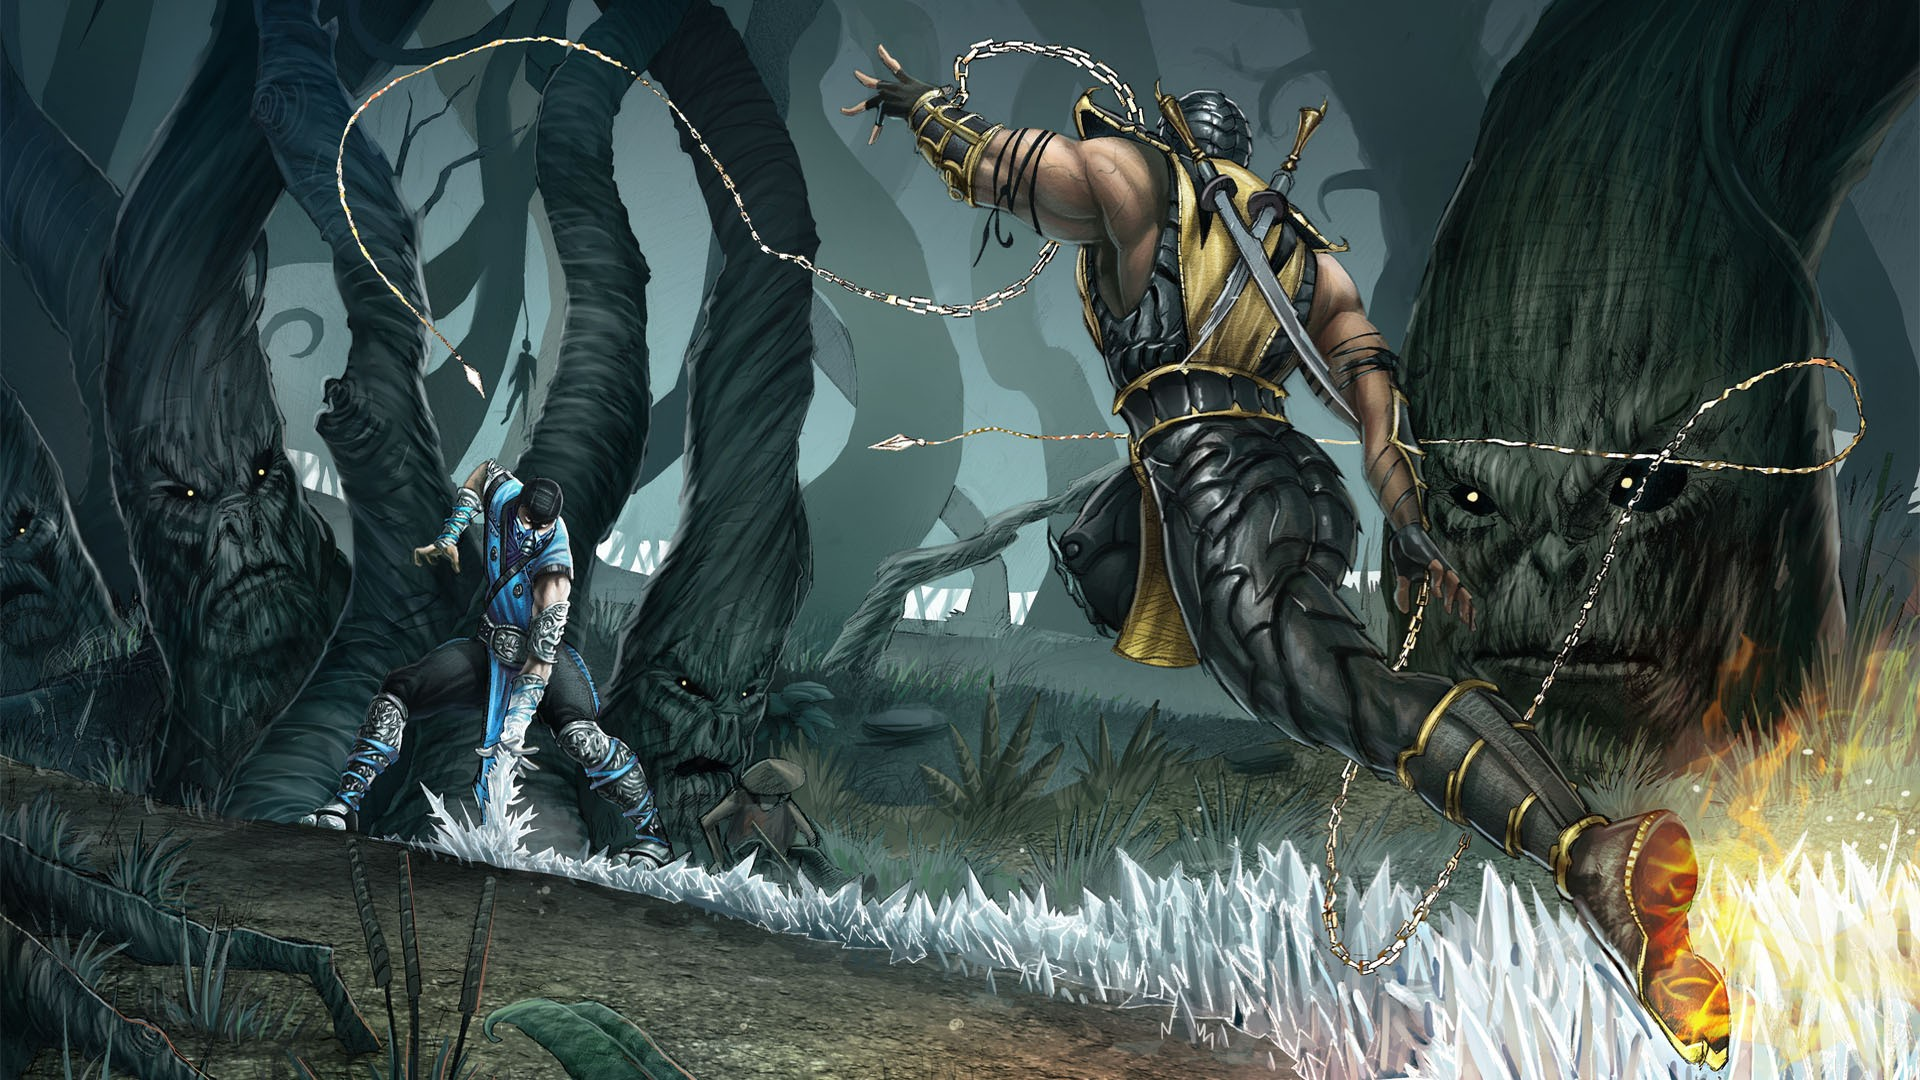 Tumblr   Post 4858836161 Mortal Kombat Scorpion Vs Sub Zero Pencils